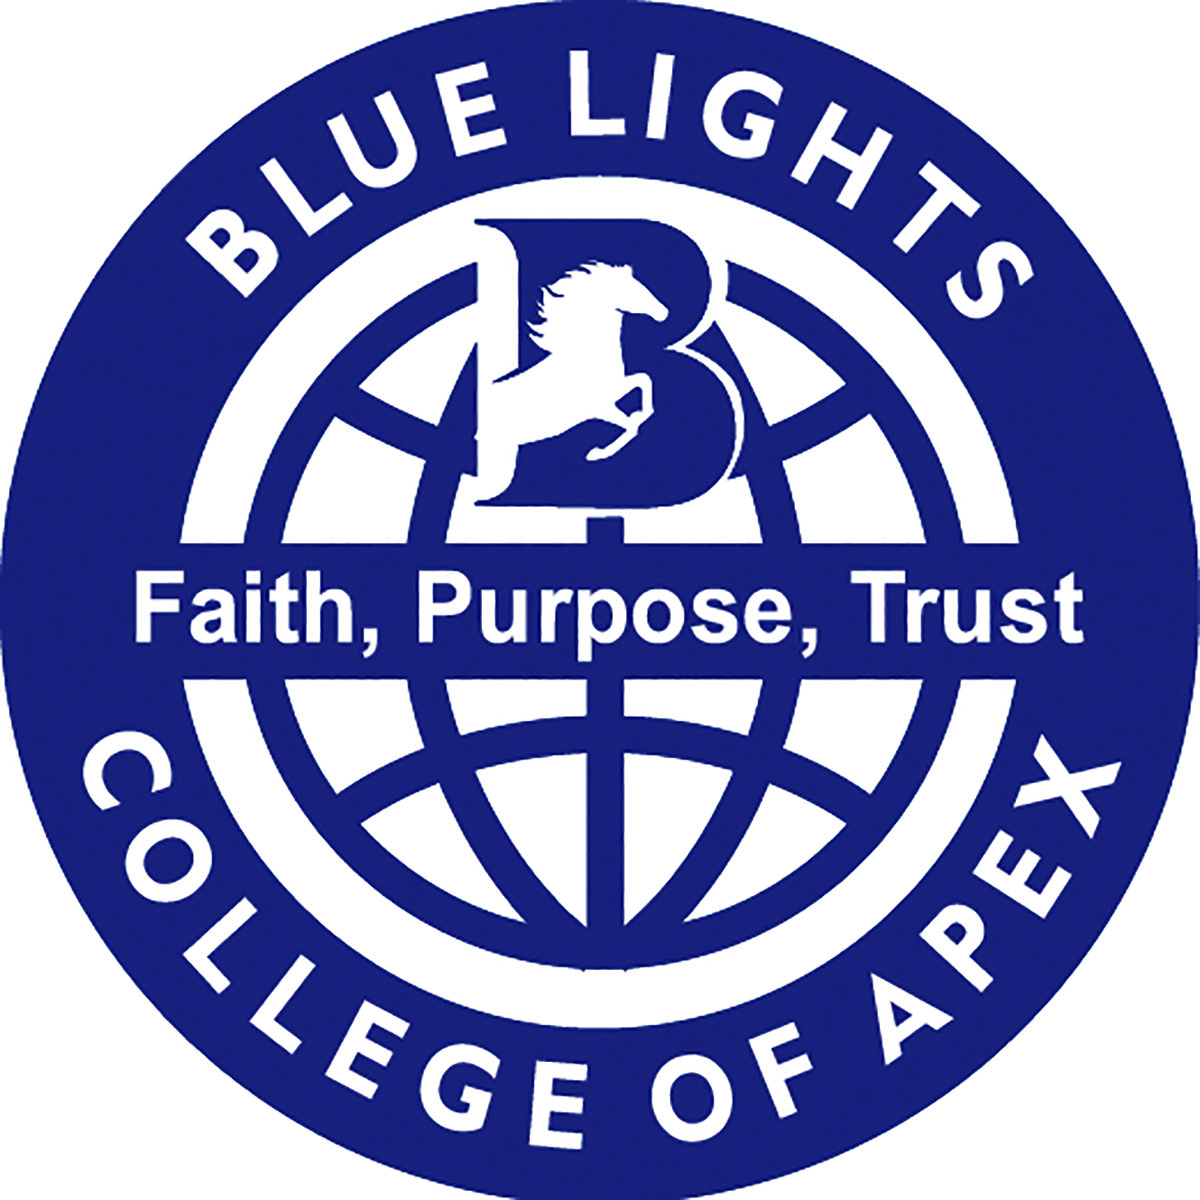 Blue Lights College        by Amy Iori